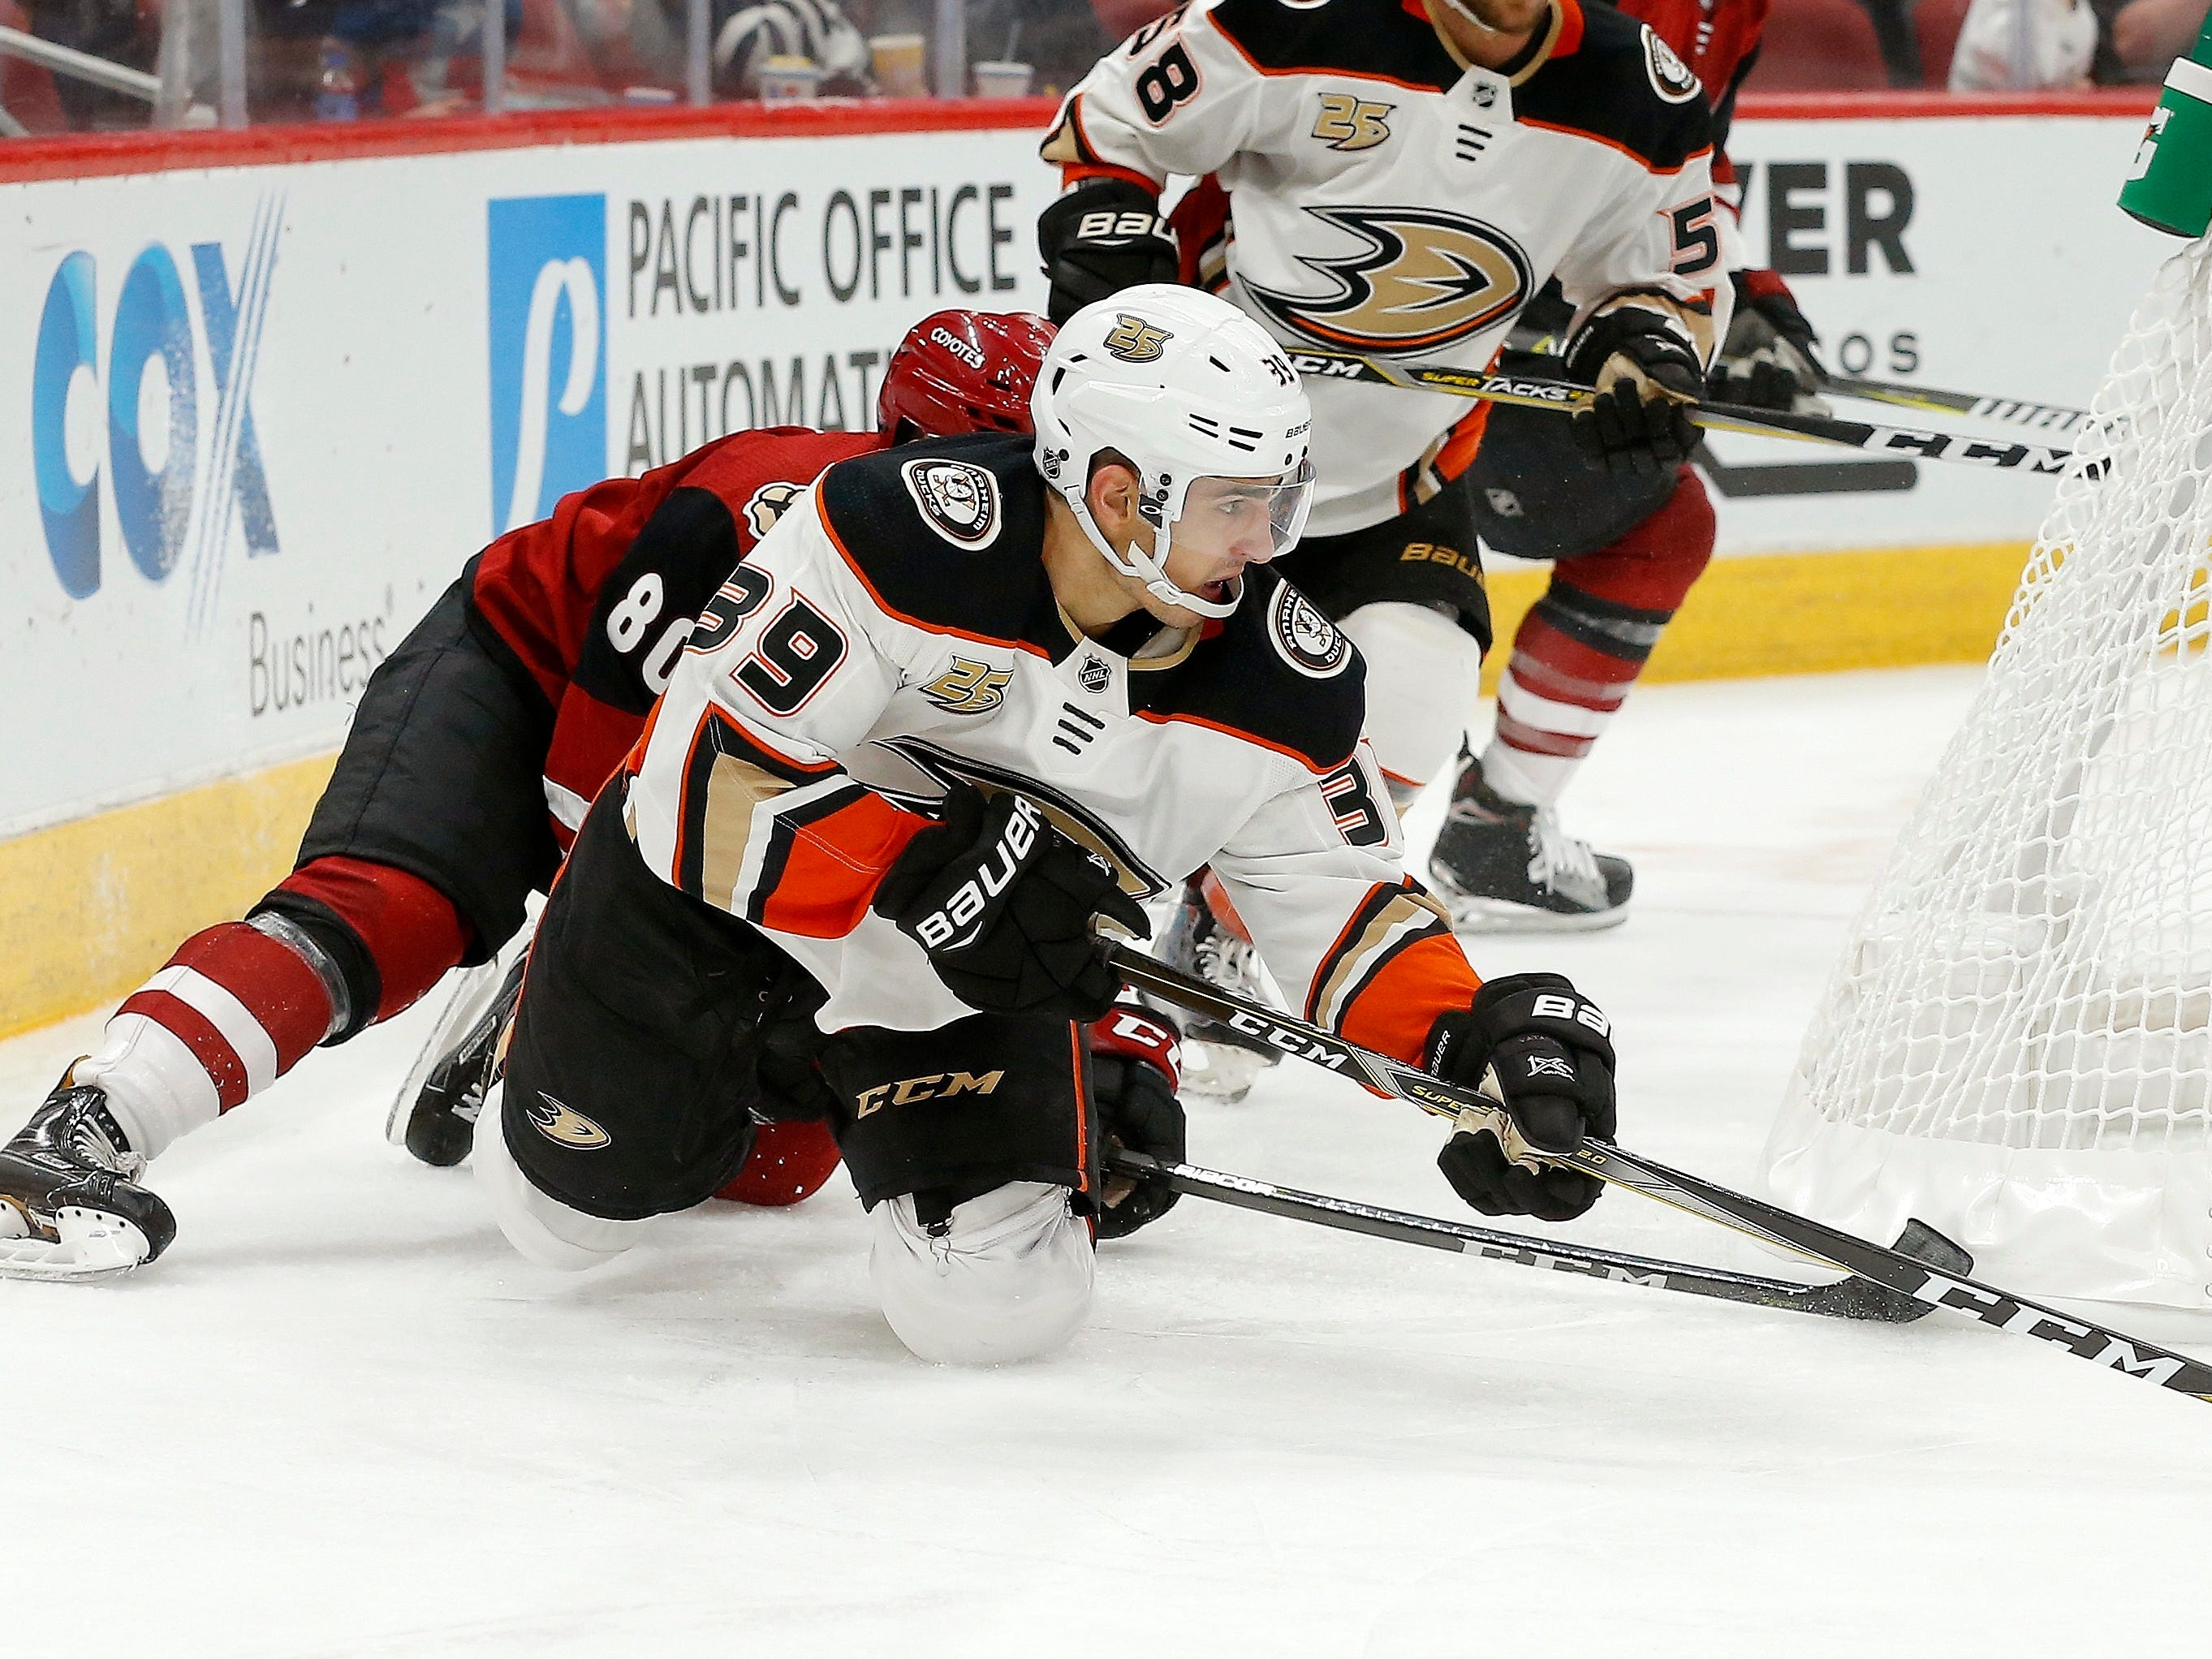 Anaheim Ducks center Joseph Blandisi (39) gets tripped up by Arizona Coyotes left wing Brayden Burke (80) during the third period of an NHL preseason hockey game Saturday, Sept. 22, 2018, in Glendale, Ariz. The Coyotes defeated the Ducks 6-1.